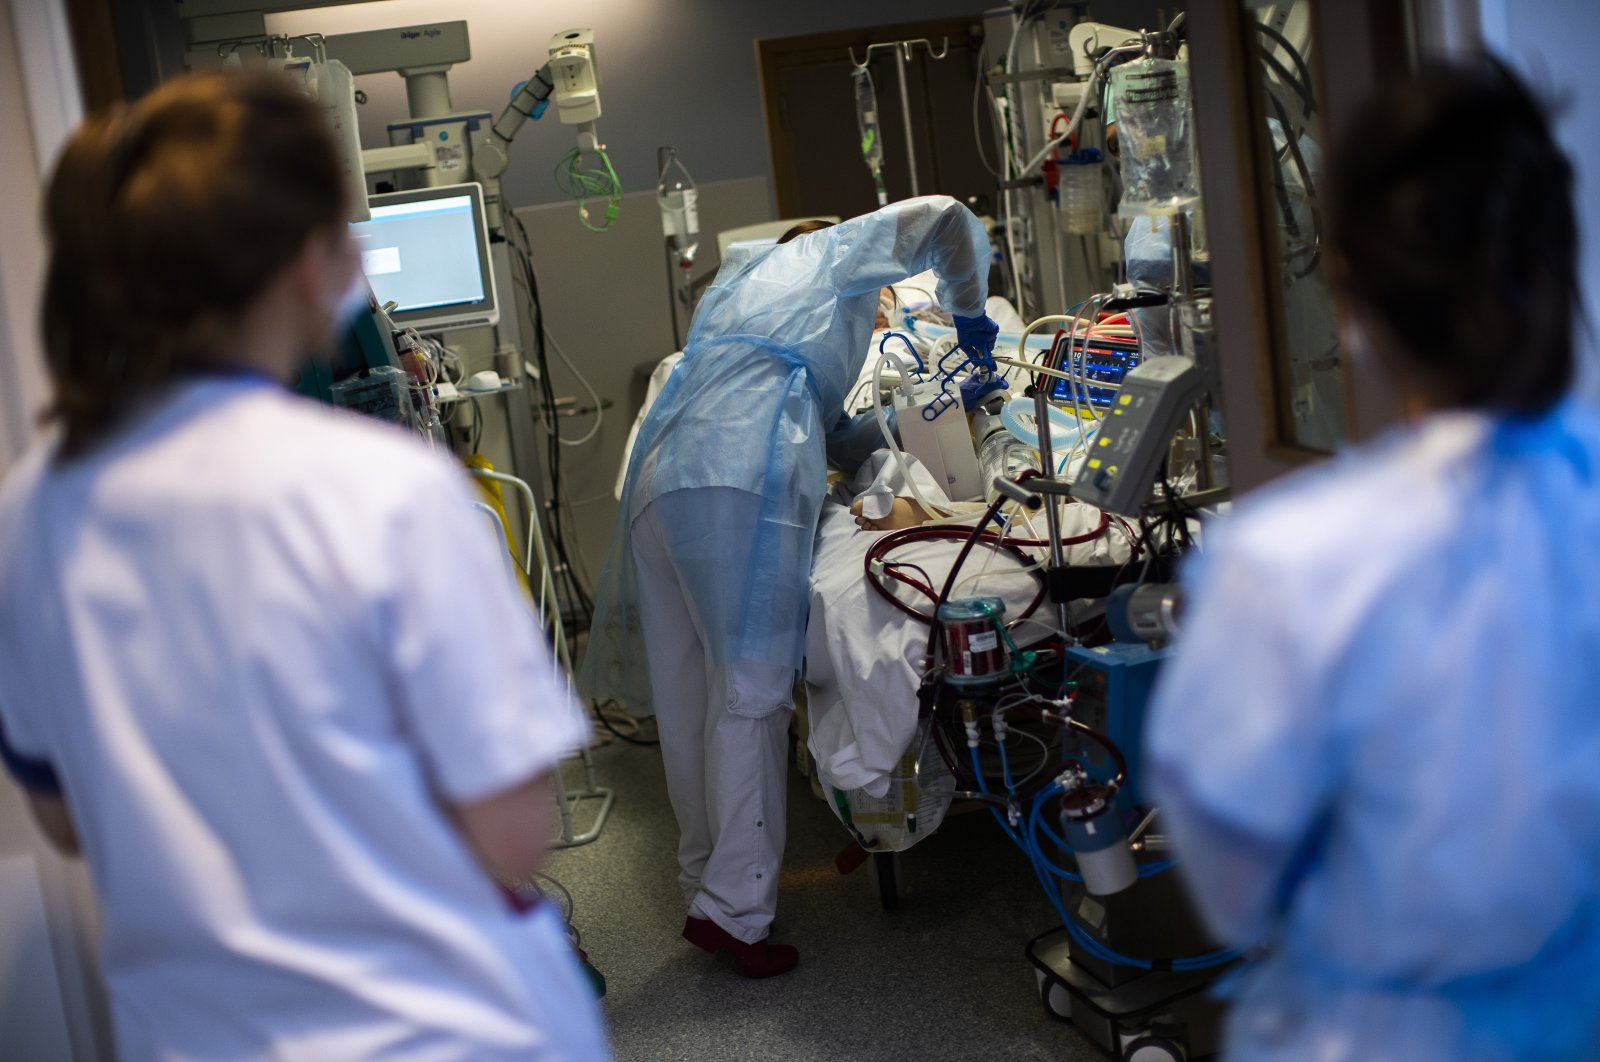 A medical staff member wearing protective equipment tends to a COVID-19 patient in the intensive care ward of Erasme hospital in Brussels, Belgium, April 28, 2021. (AP Photo)